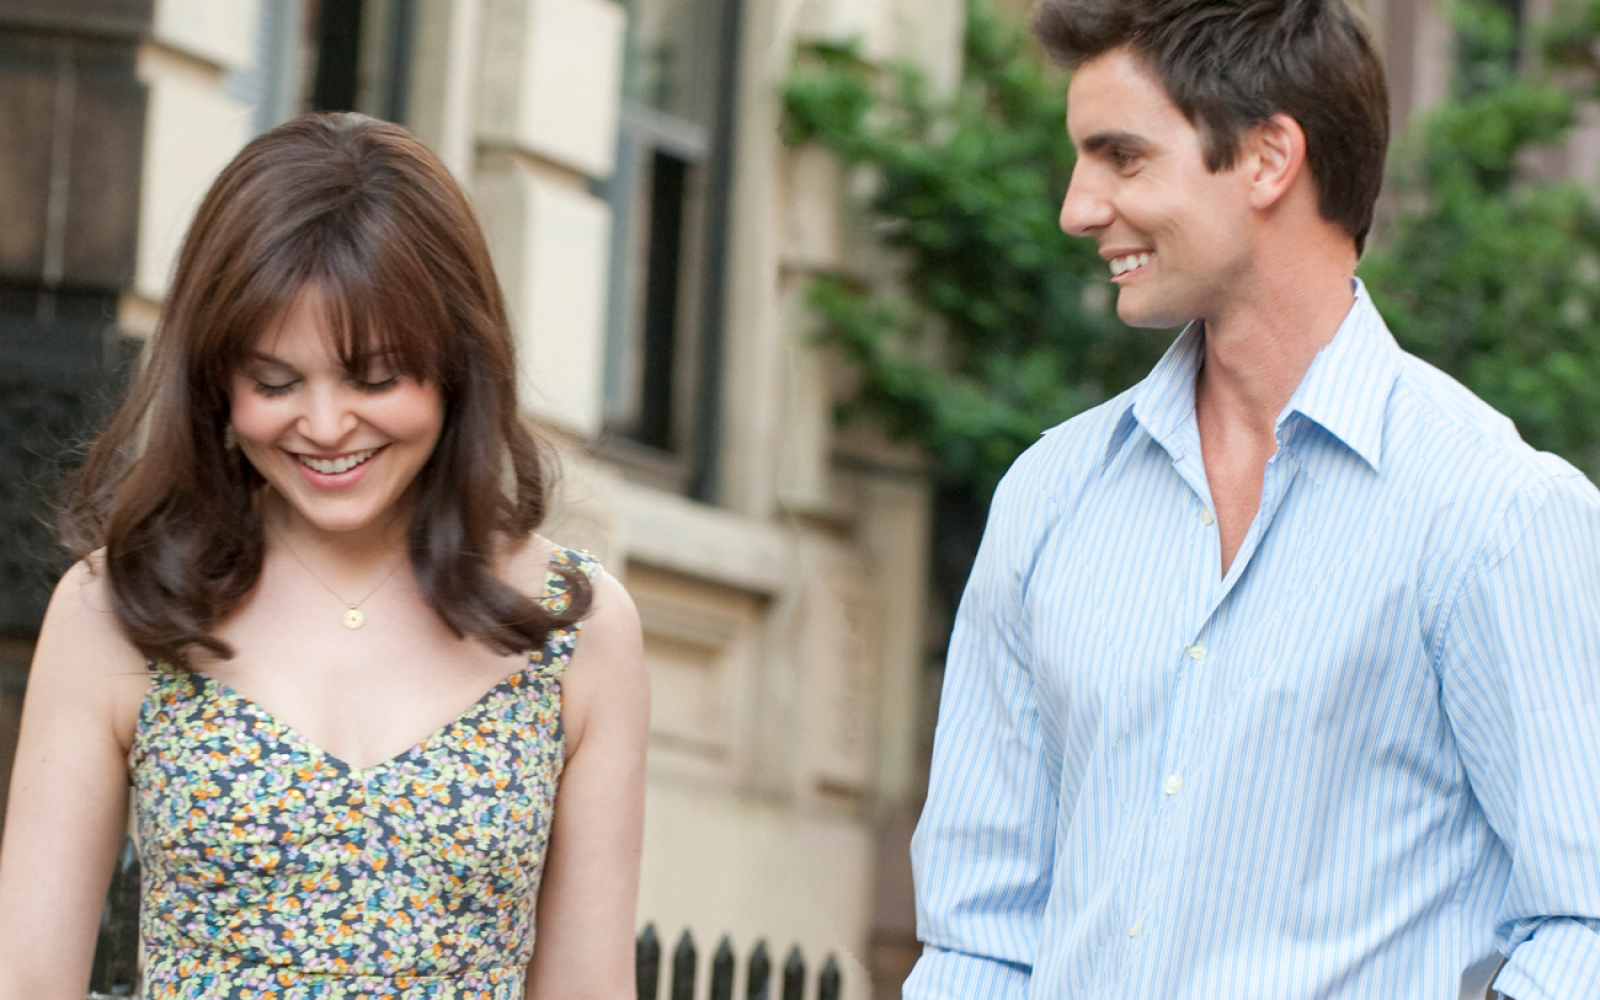 14 Of The Best Quotes From 'Something Borrowed'